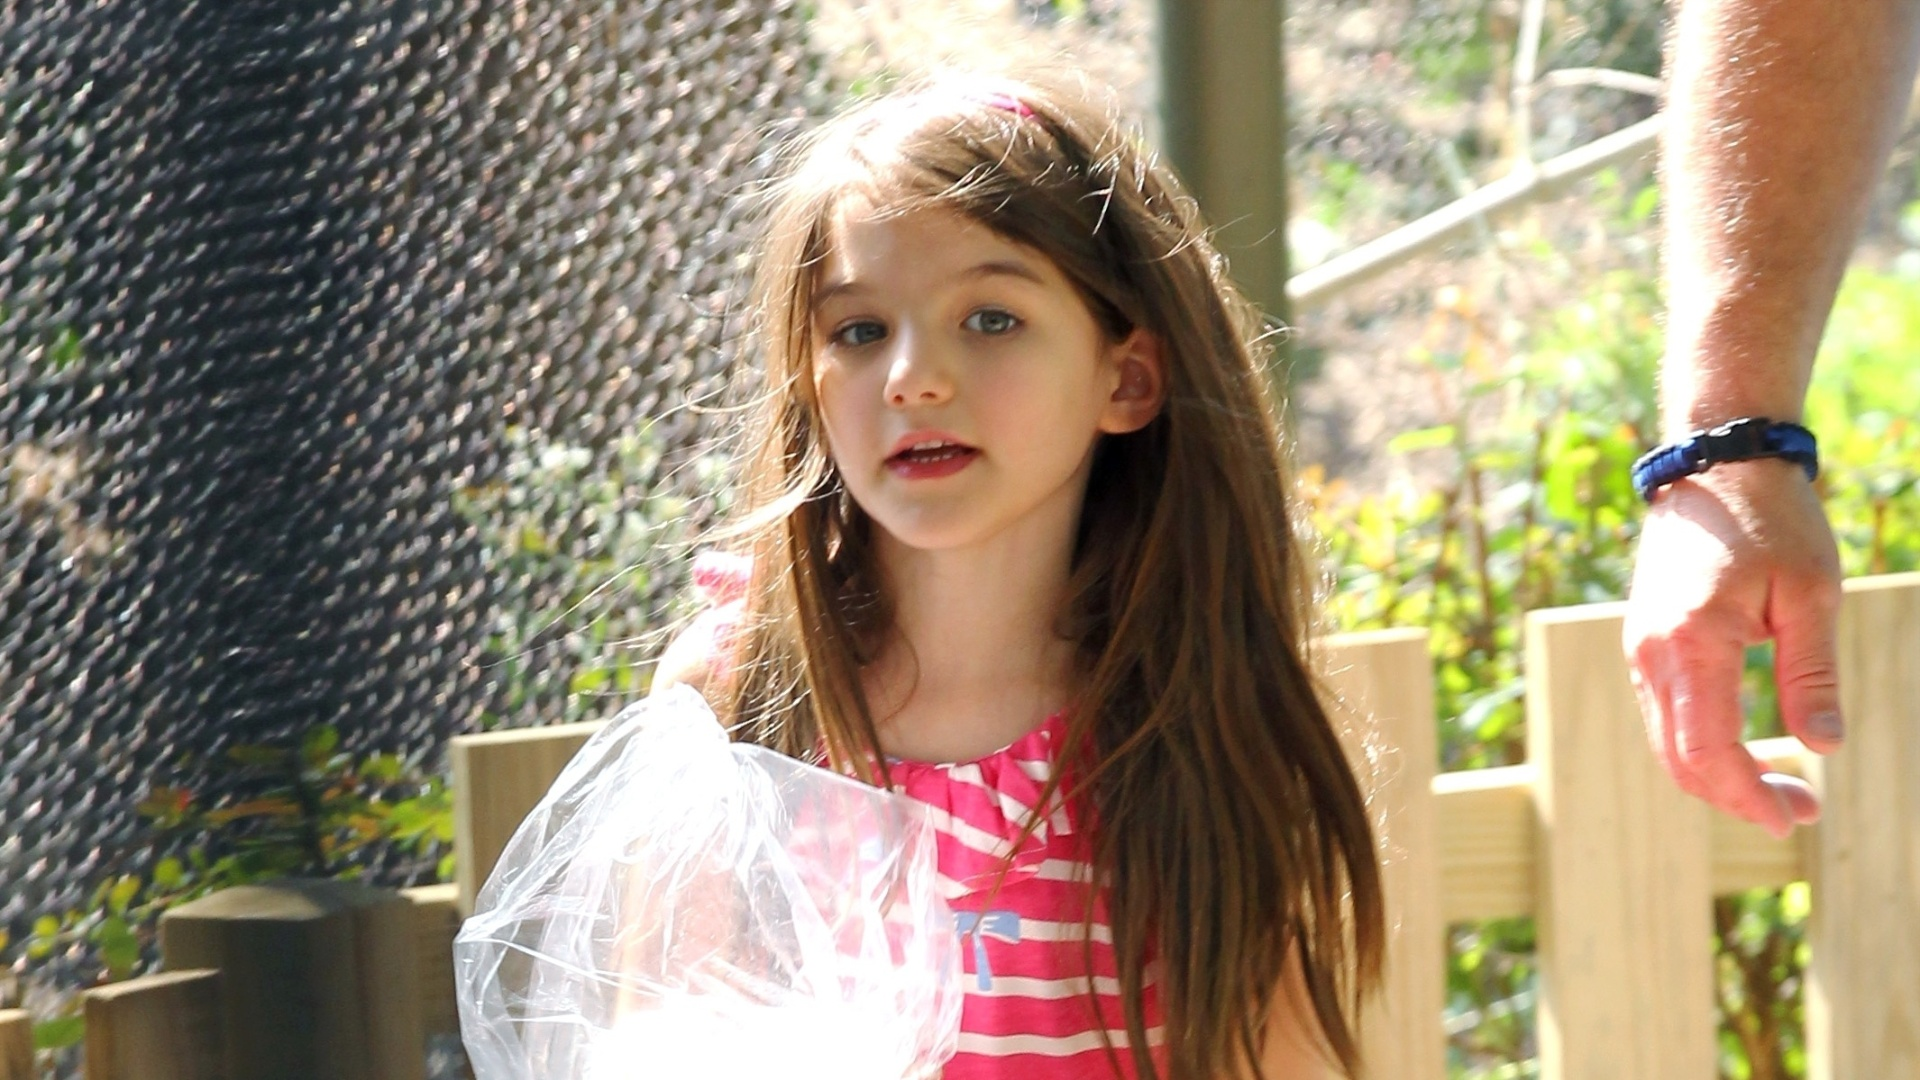 Suri Cruise se diverte no Central Park Zoo em Nova York (12/7/12)